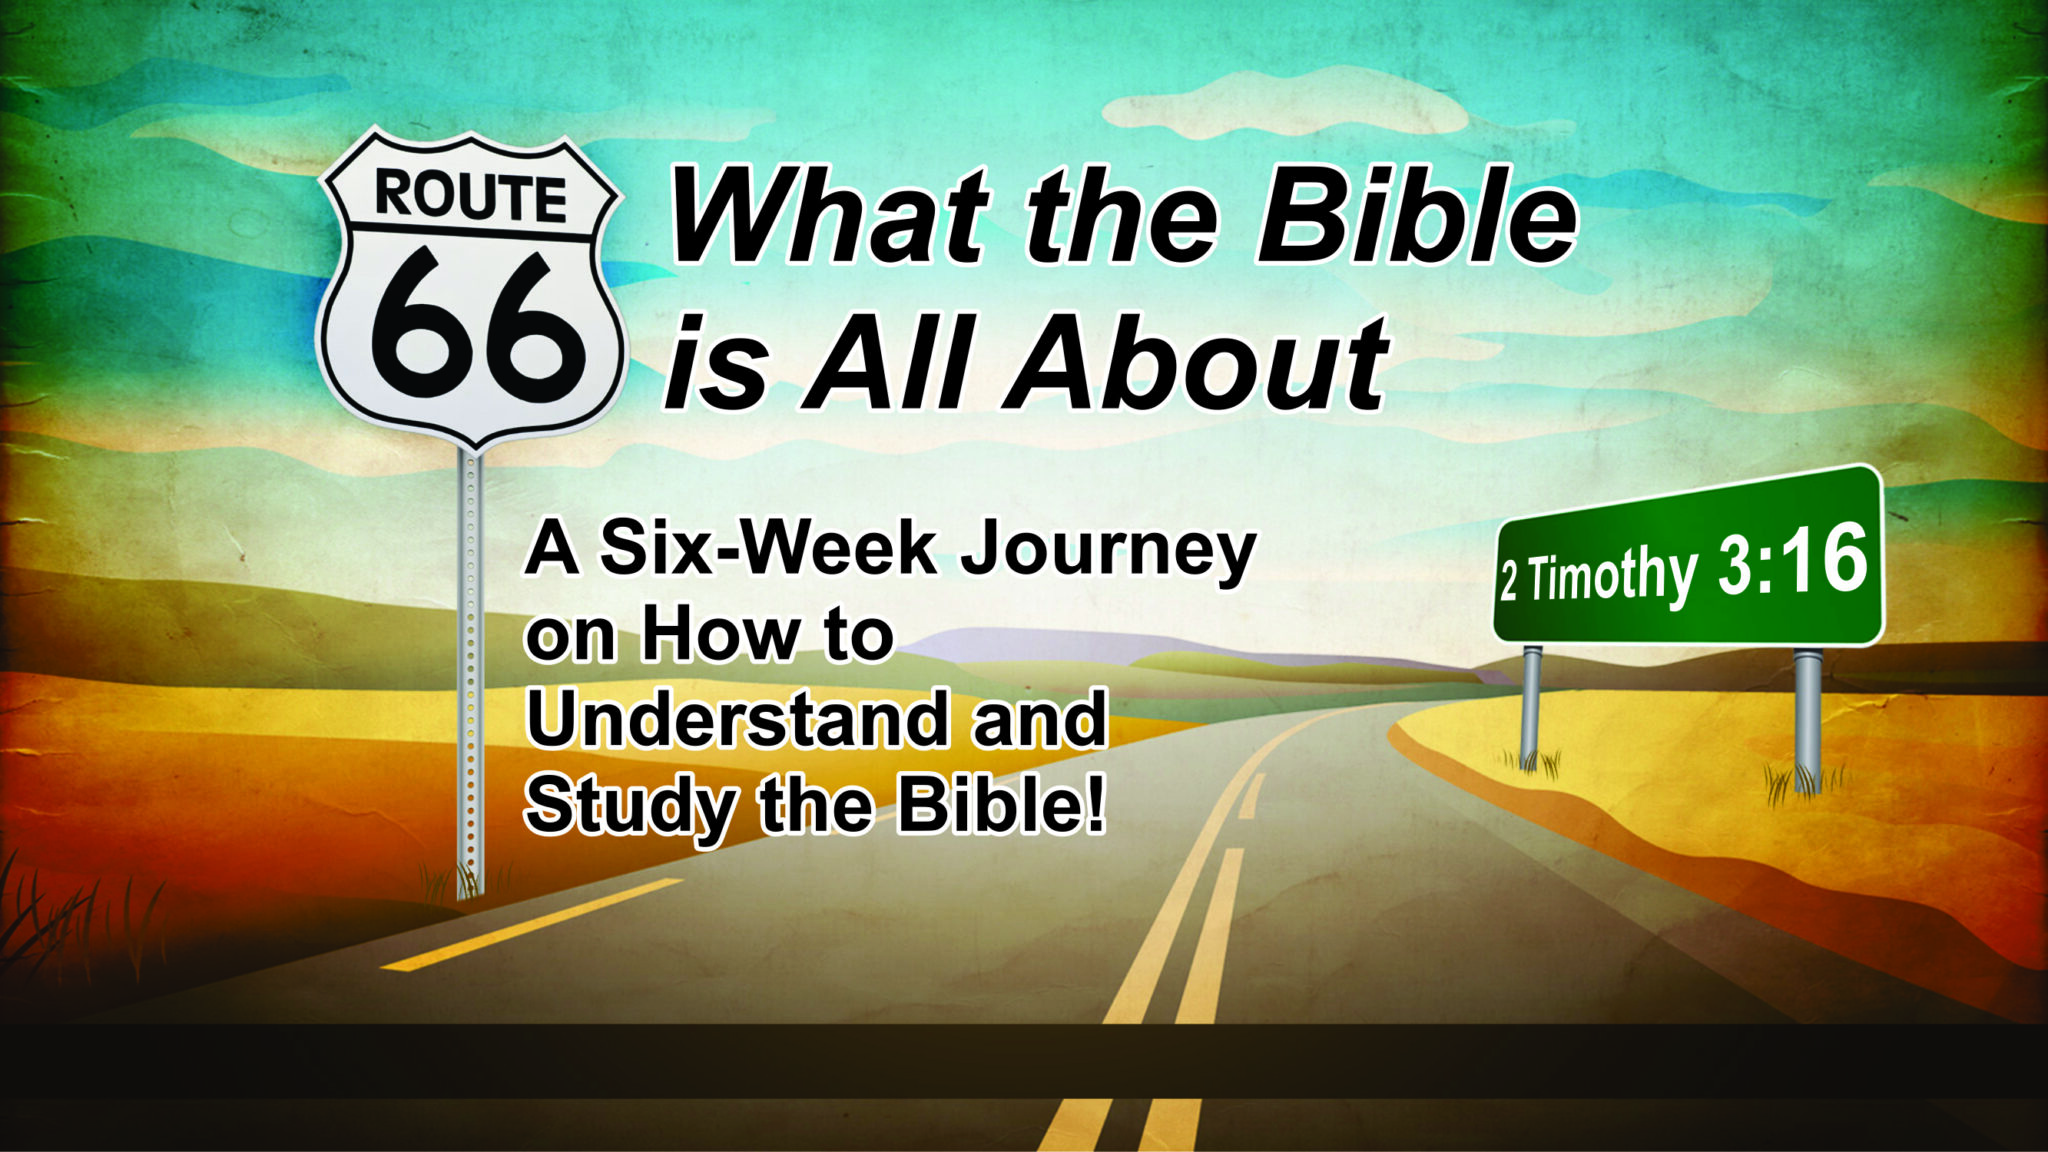 Route 66; What the Bible is All About